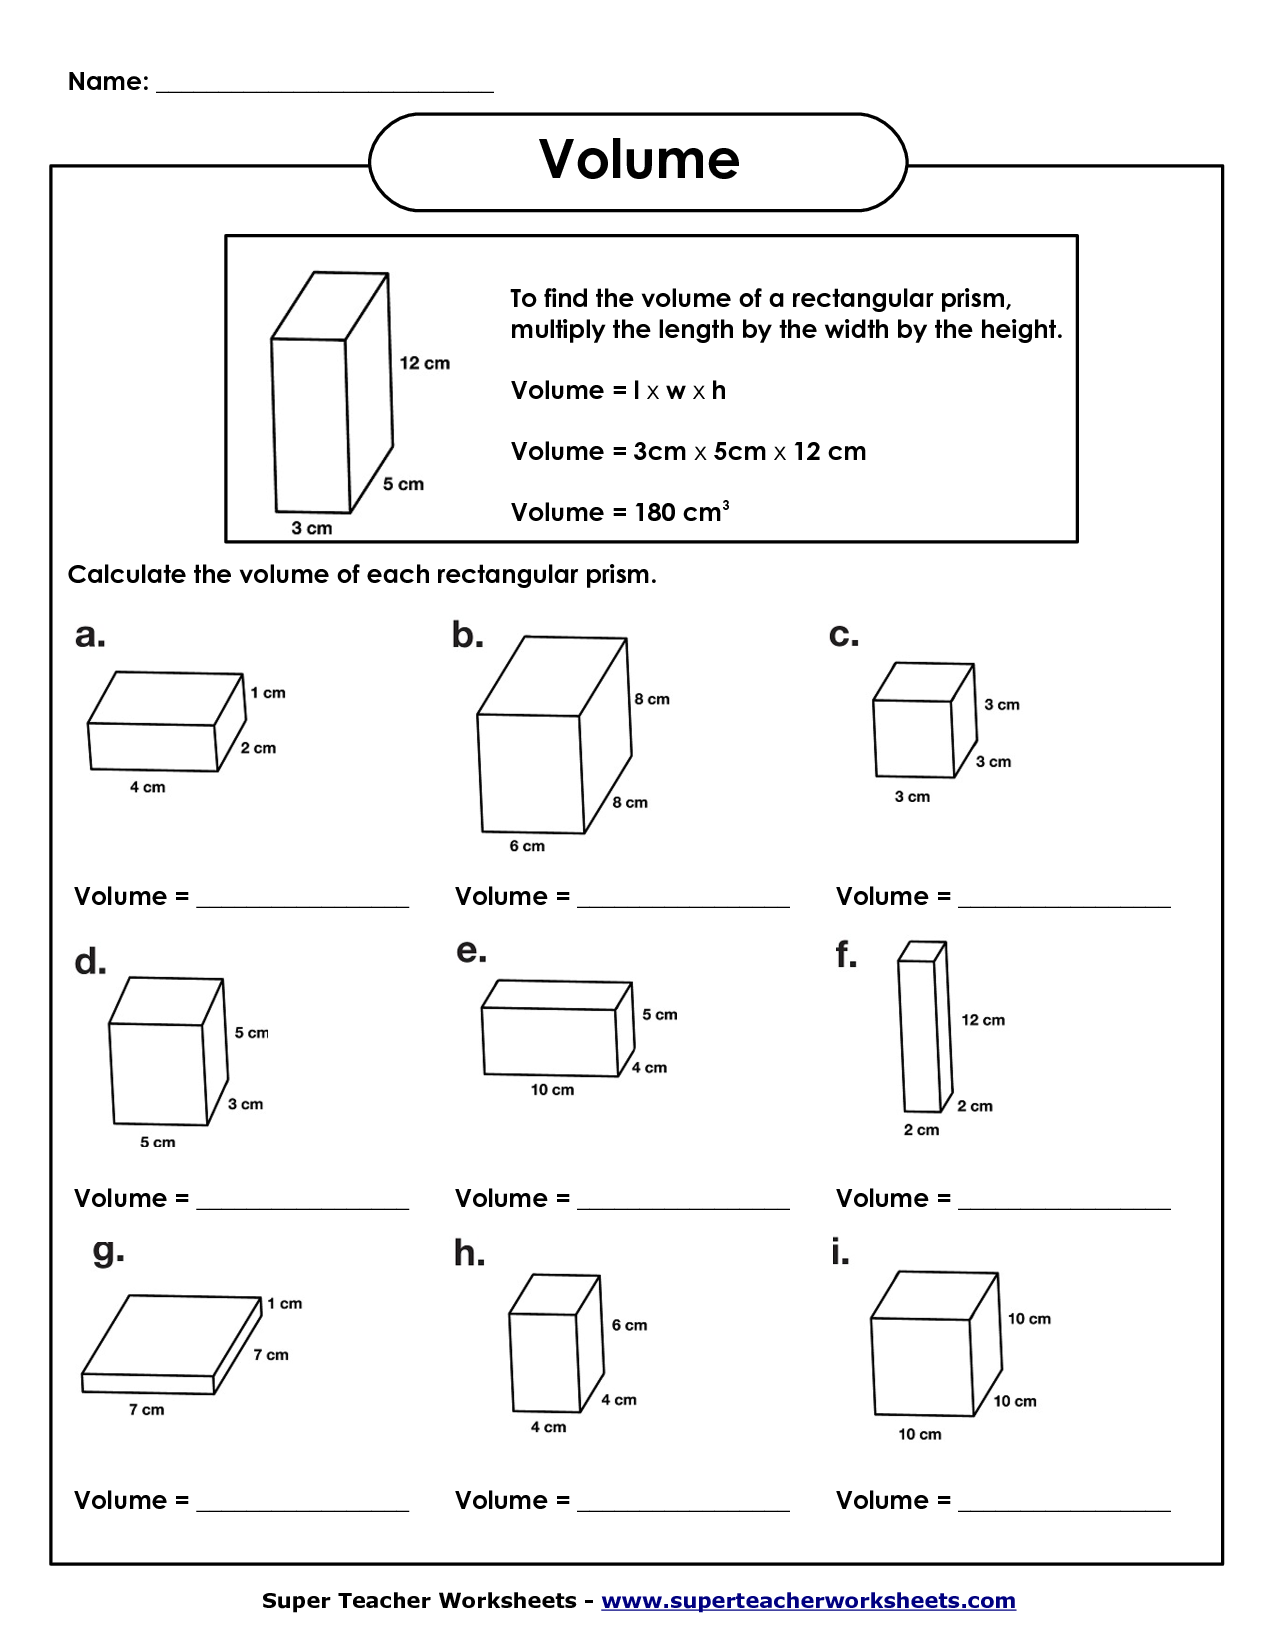 Worksheet Volume Conversion Worksheets 1000 images about tutoring on pinterest